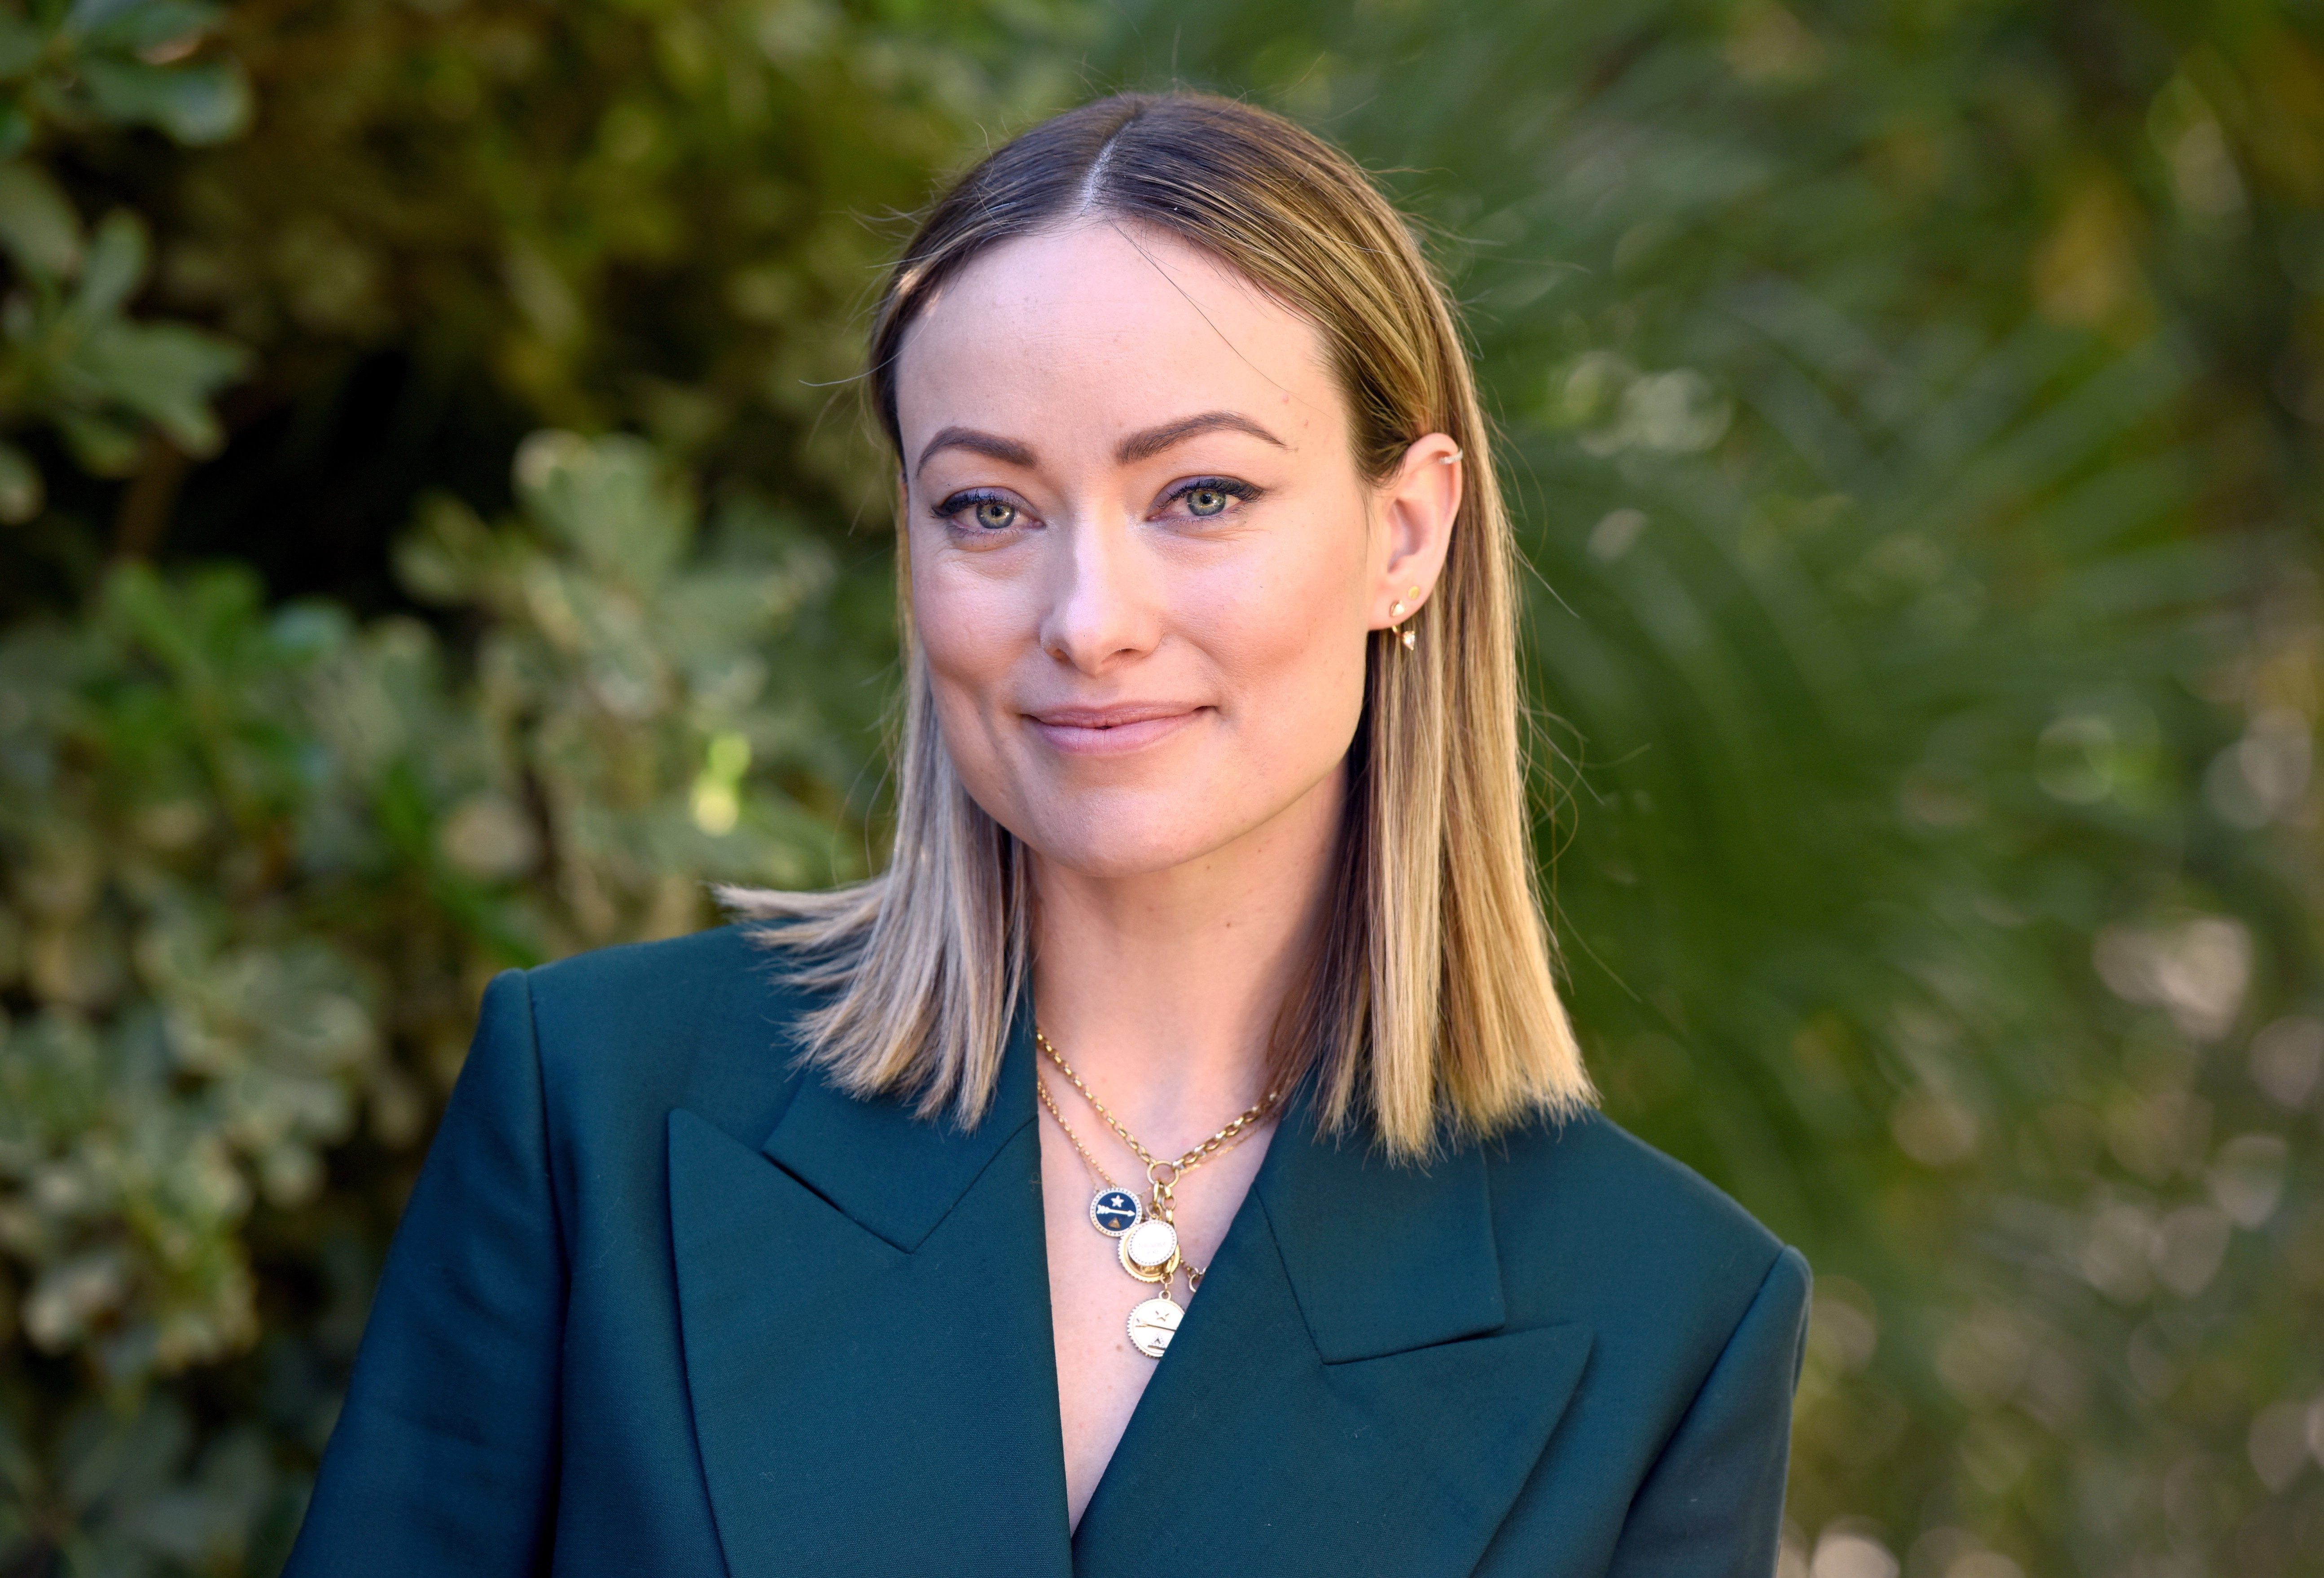 Olivia Wilde attends Variety's Creative Impact Awards on January 4, 2019, in Palm Springs, California. | Source: Getty Images.